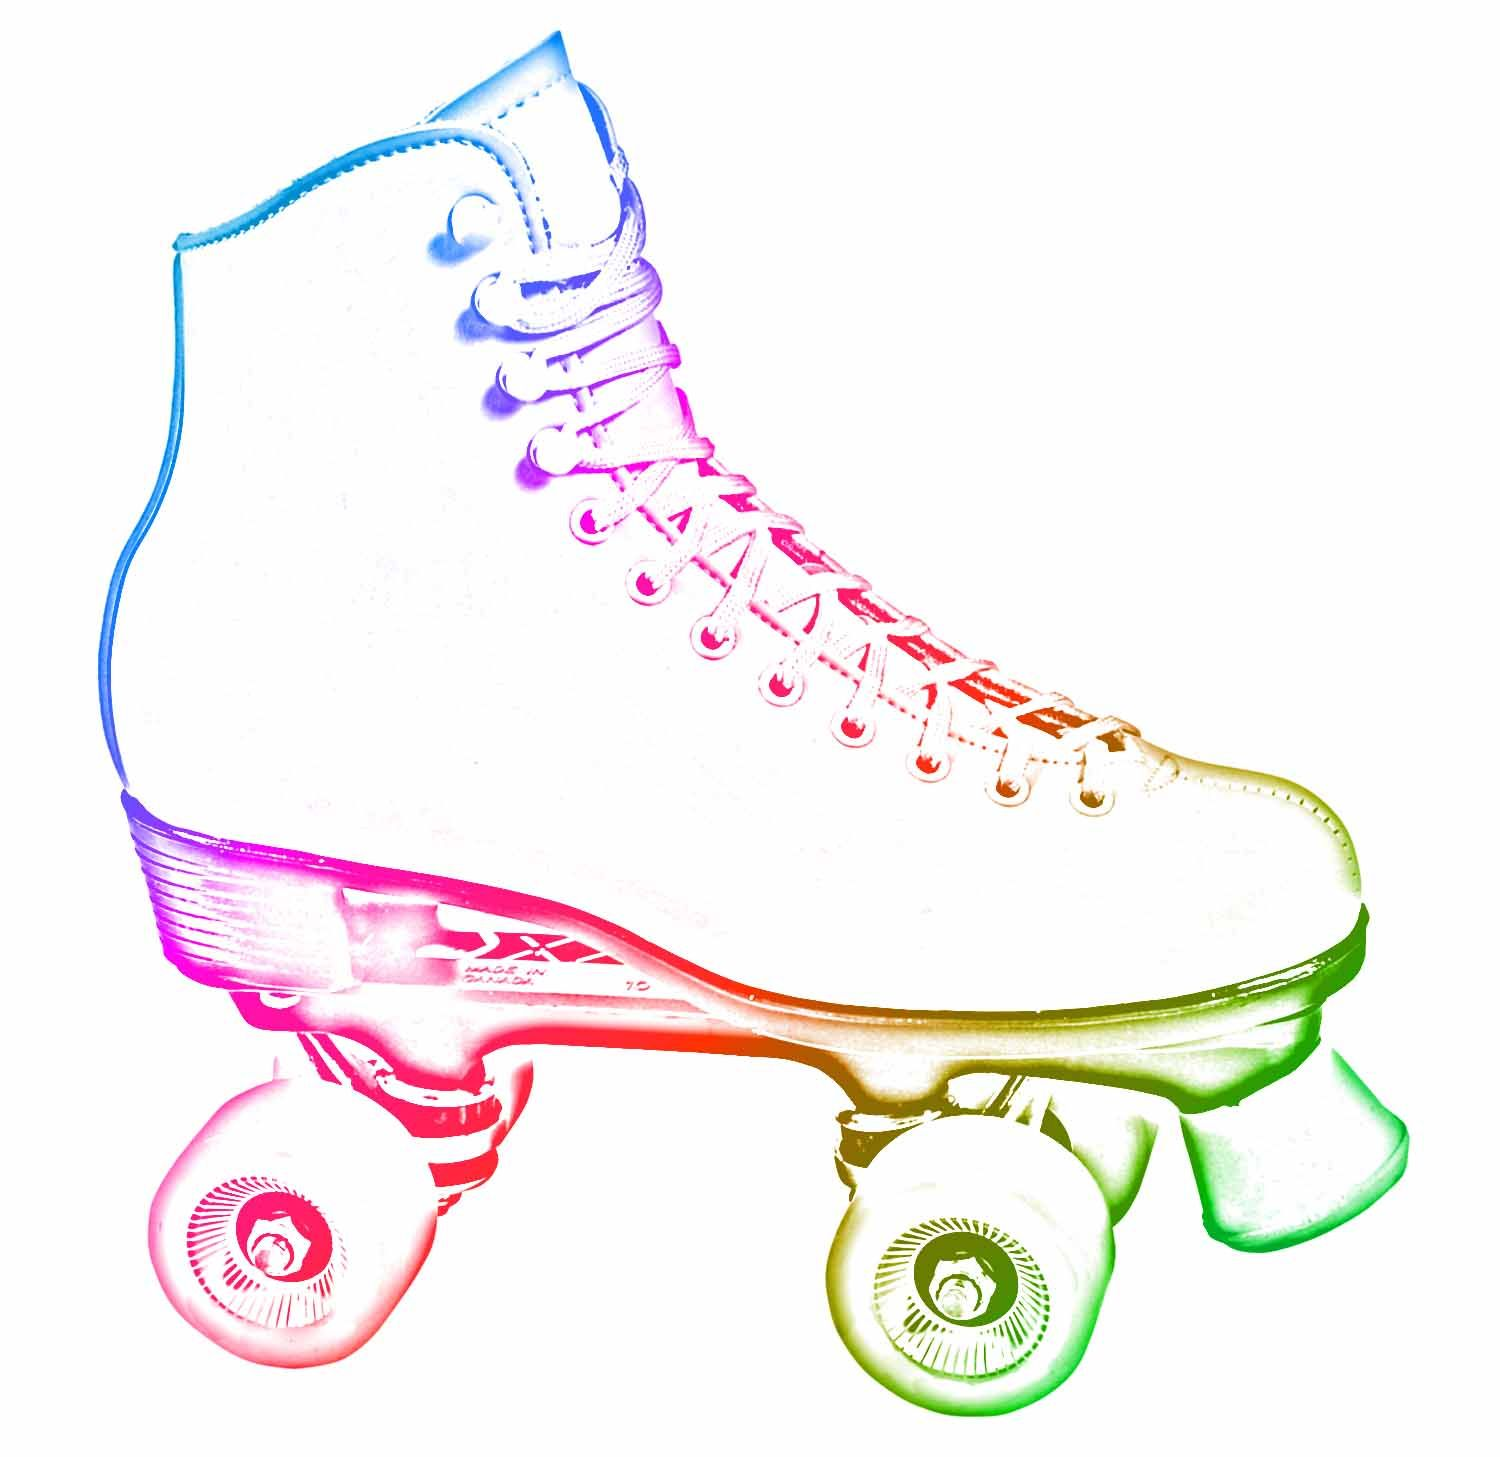 quad skate clip art - photo #15